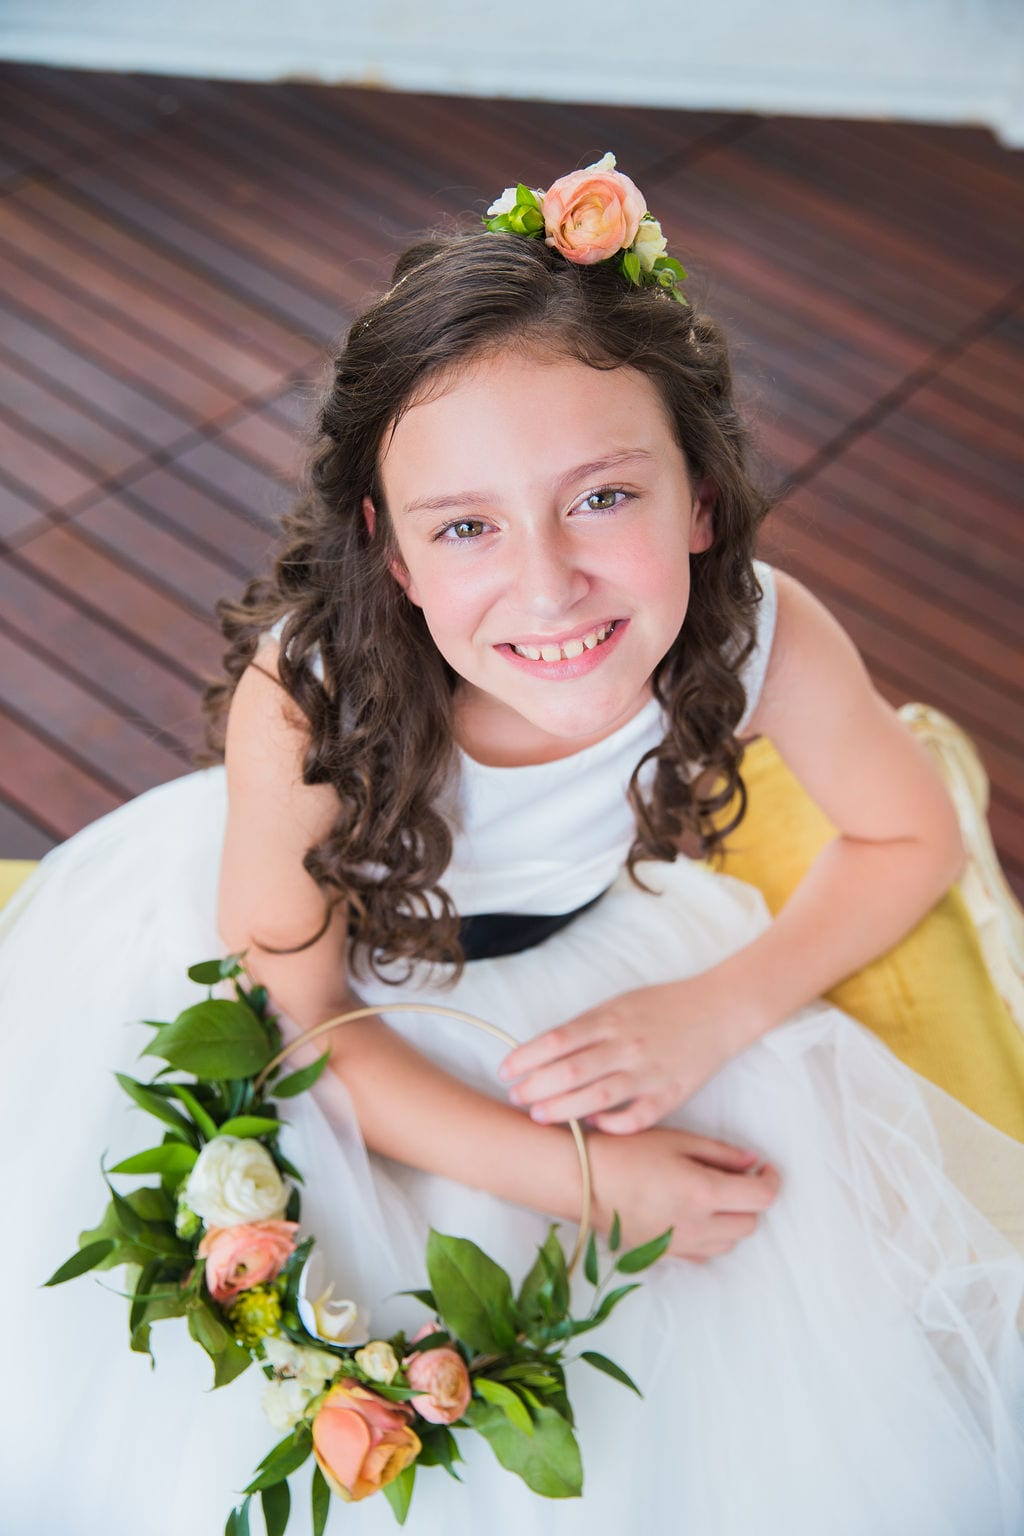 St Anthony Styled wedding flower girl looking up